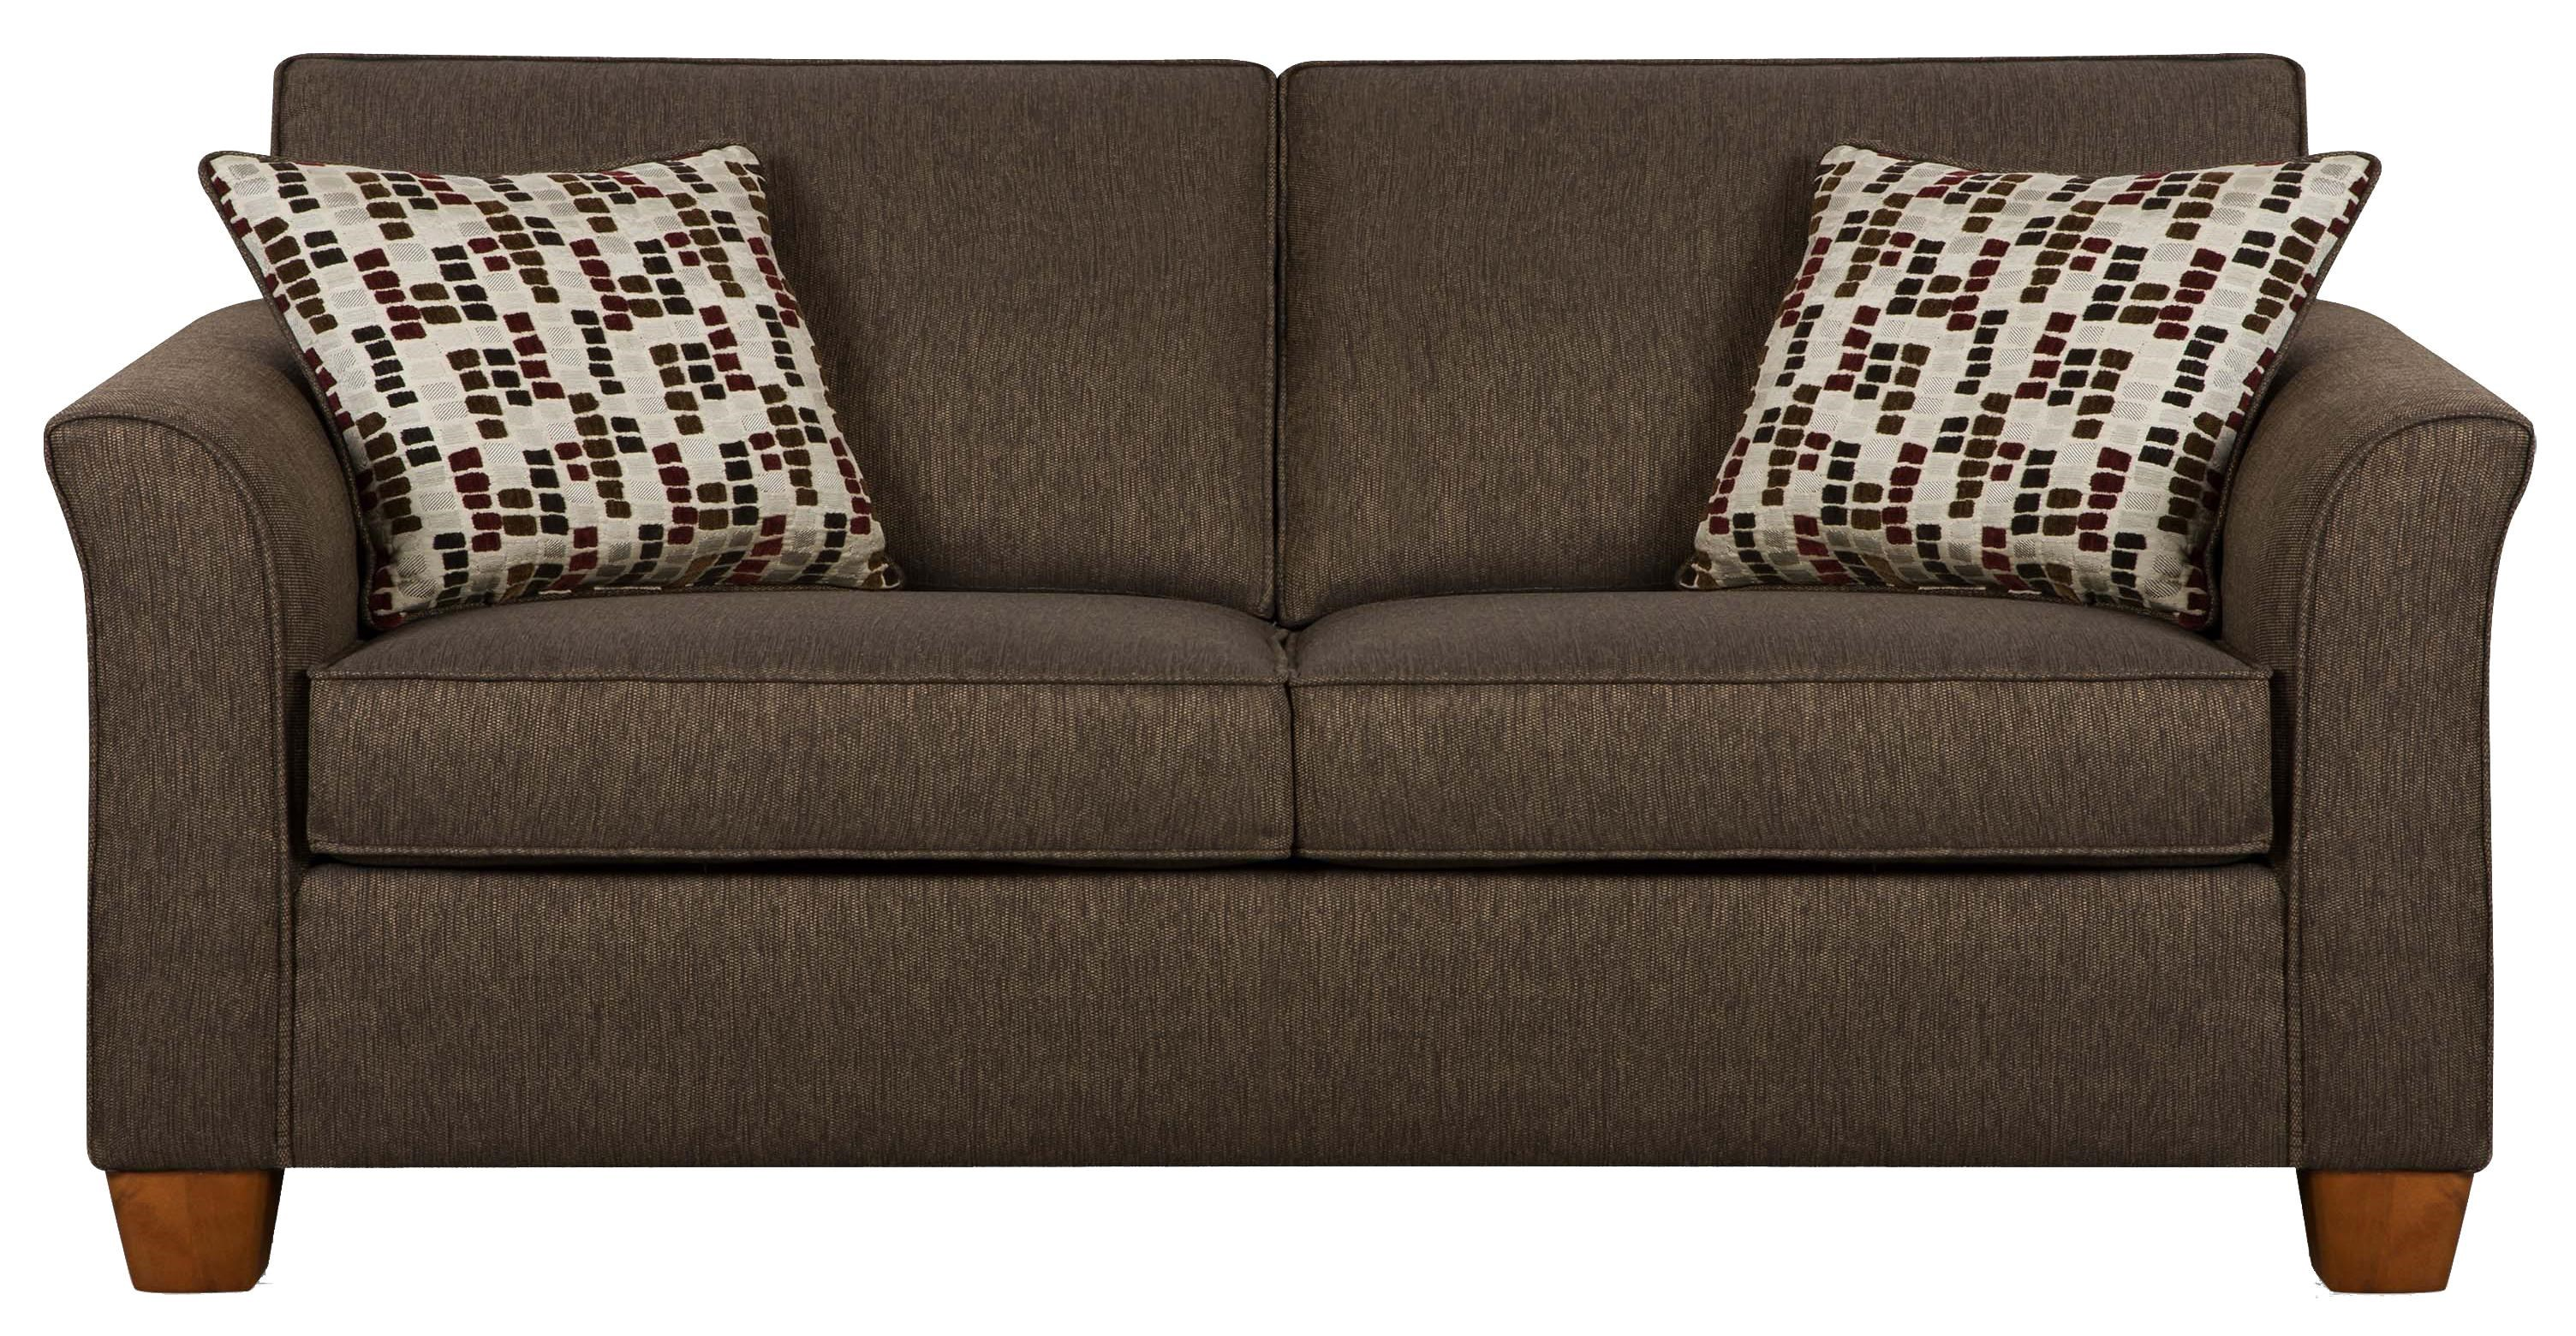 7251 Full Size Sofa Sleeper In Casual Furniture Style By Simmons Upholstery